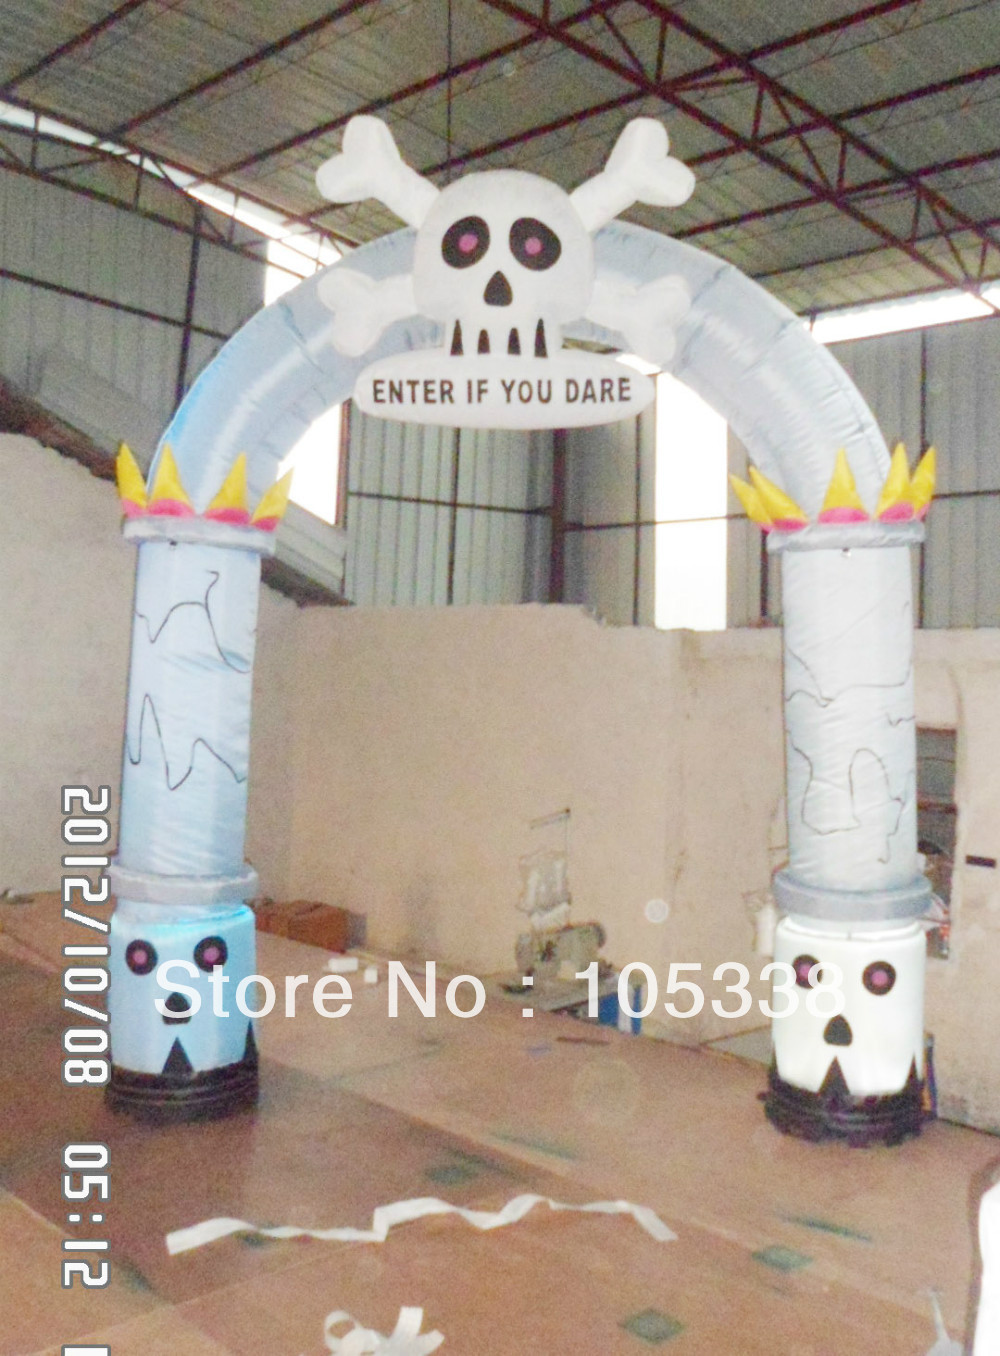 Outdoor inflatable halloween decorations - Gemmy Inflatable Archway Gate 10 Outdoor Halloween Decorations In Festive Party Supplies From Home Garden On Aliexpress Com Alibaba Group